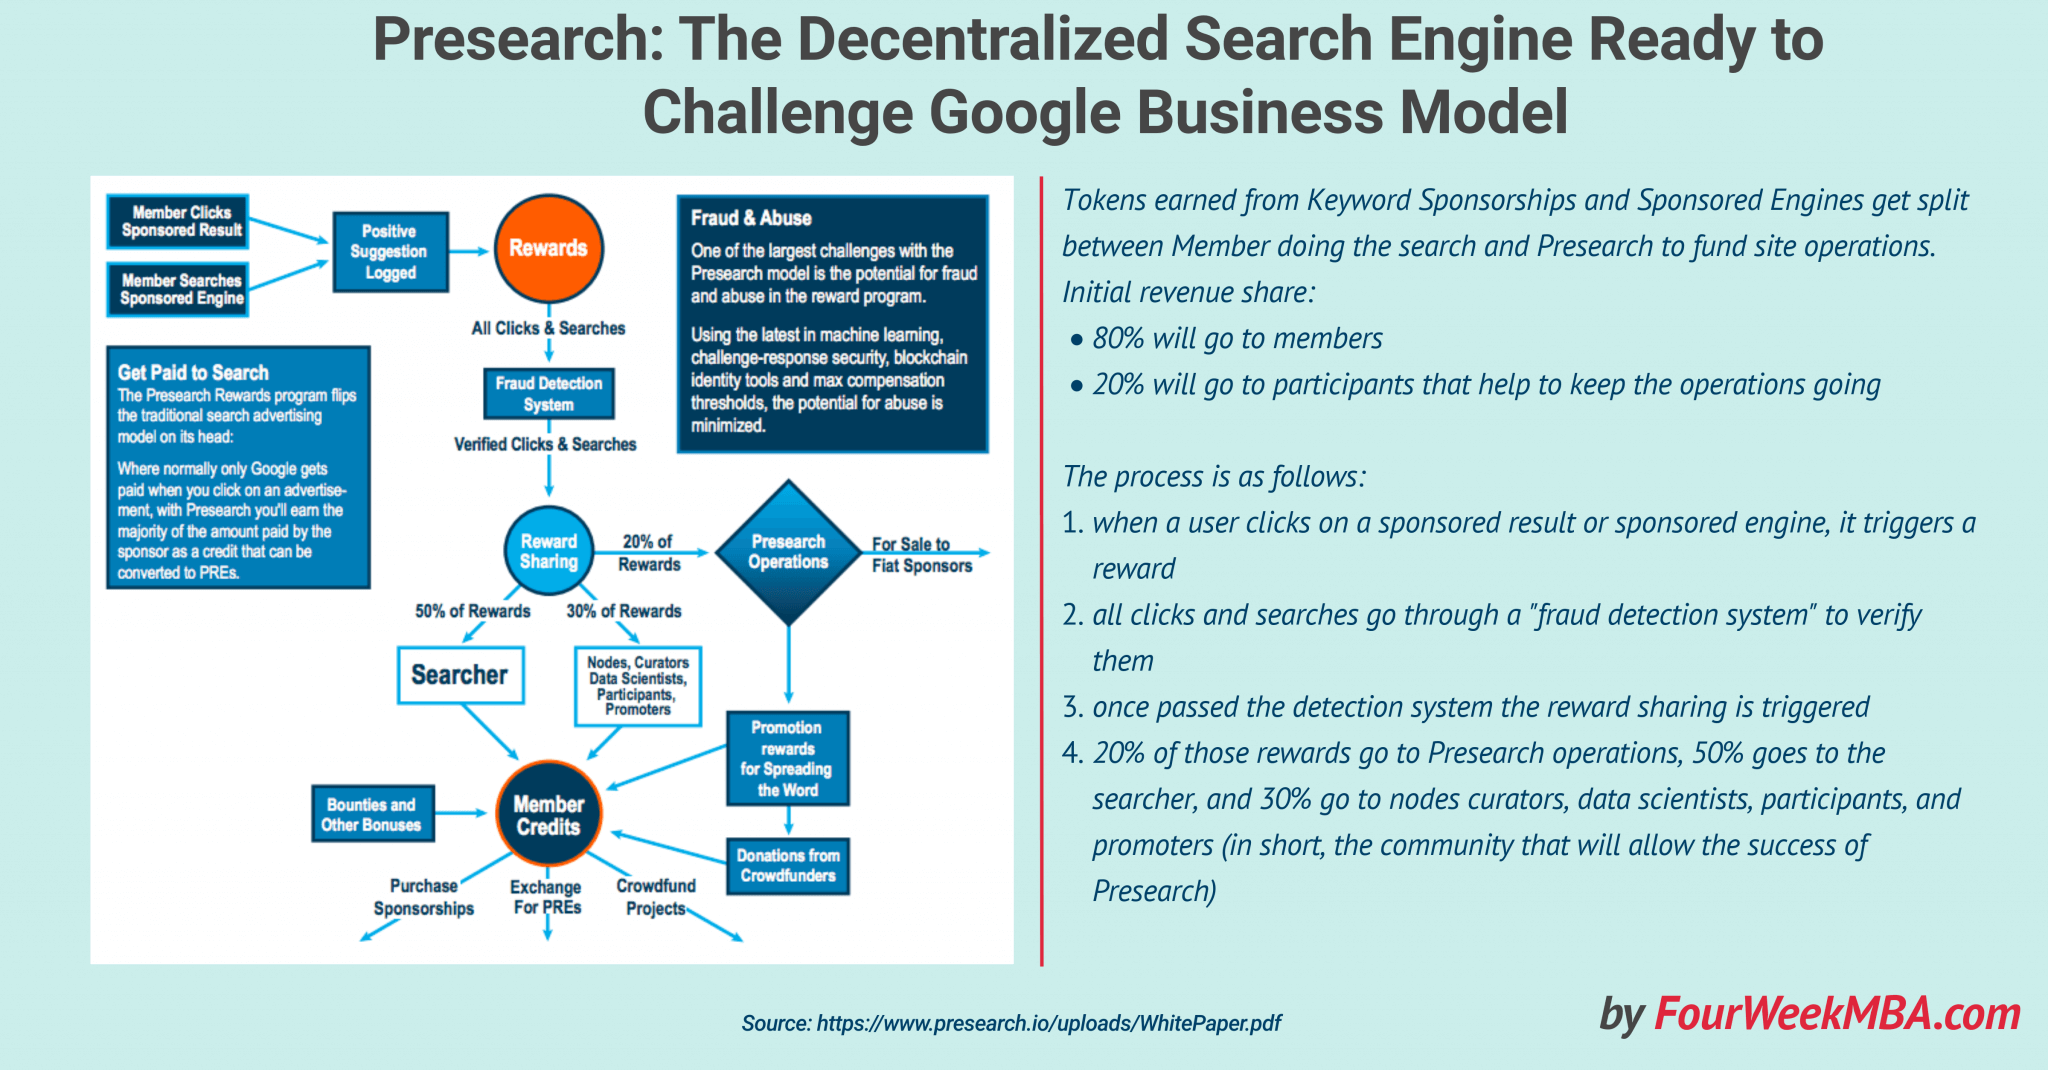 presearch-decentralized-search